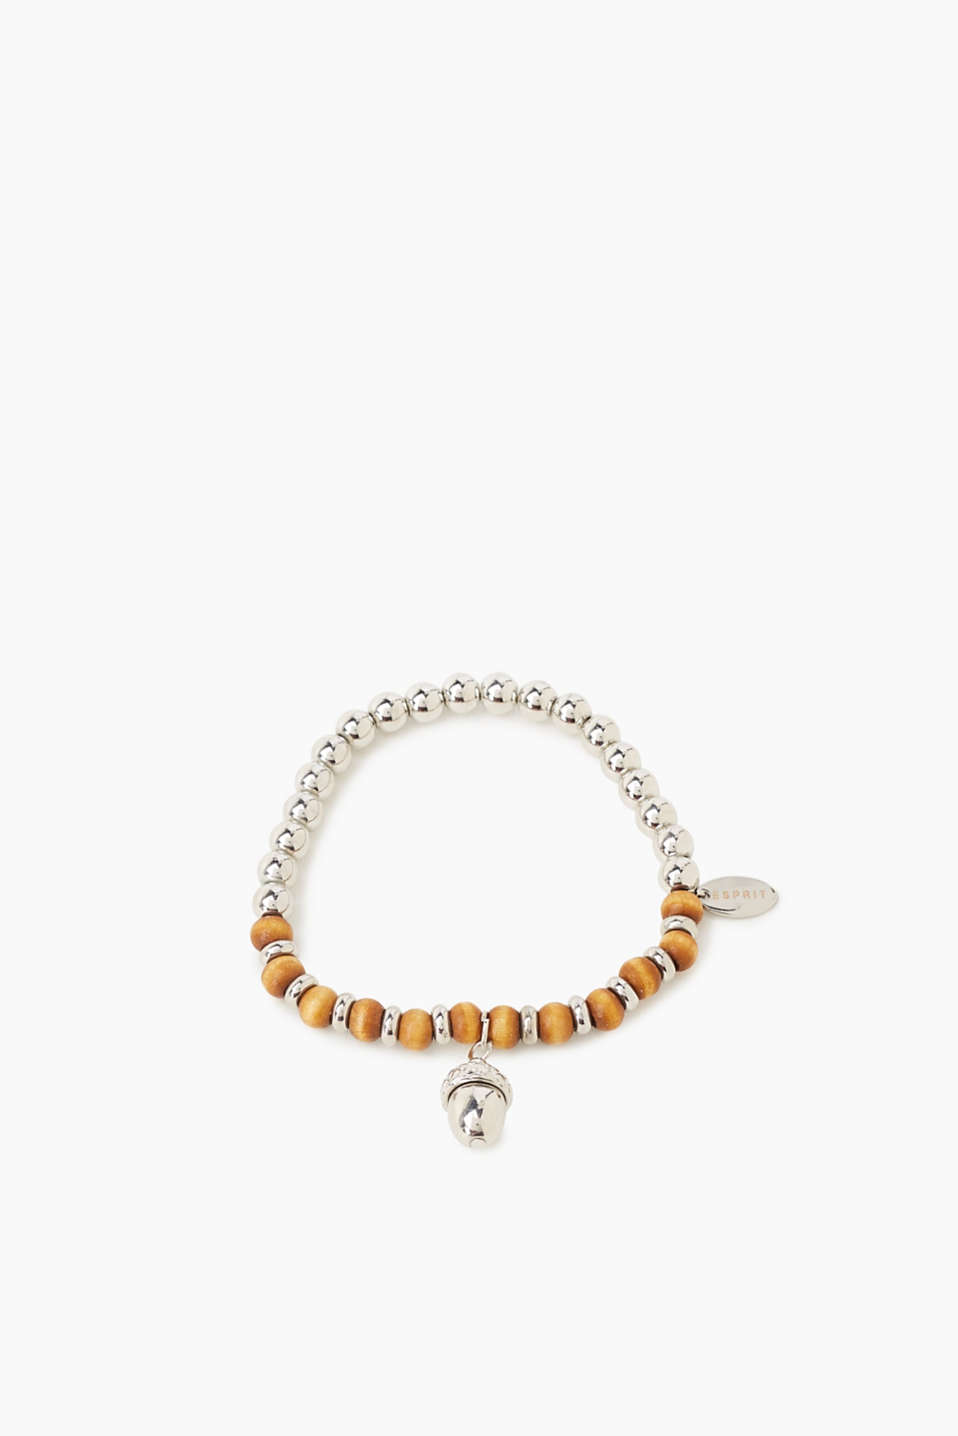 Tribal style meets metallic sheen: This pearl bracelet with a charm pendant looks both natural and sophisticated!